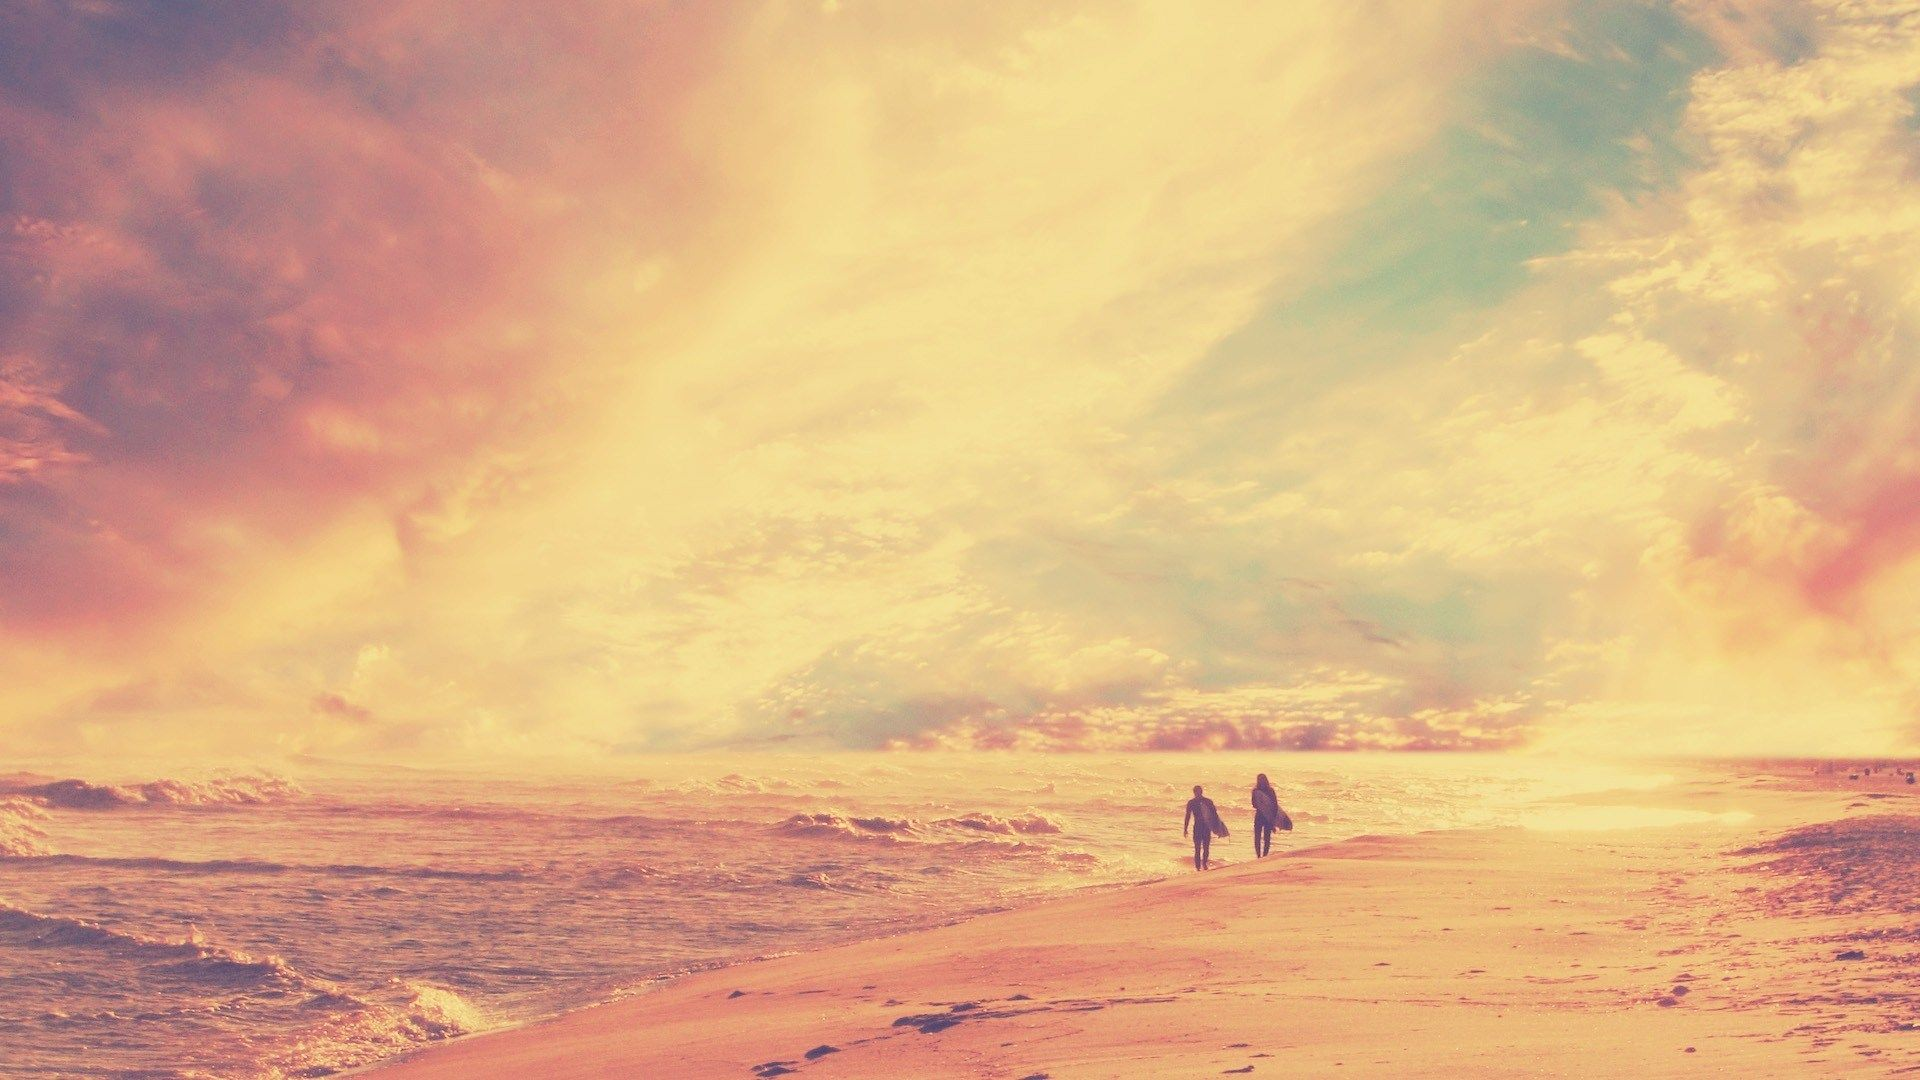 Beach Dawn Minimalism People Retro Beach Together Vintage Nature Vintage Beach Photography Hipster Wallpaper Beach Photography